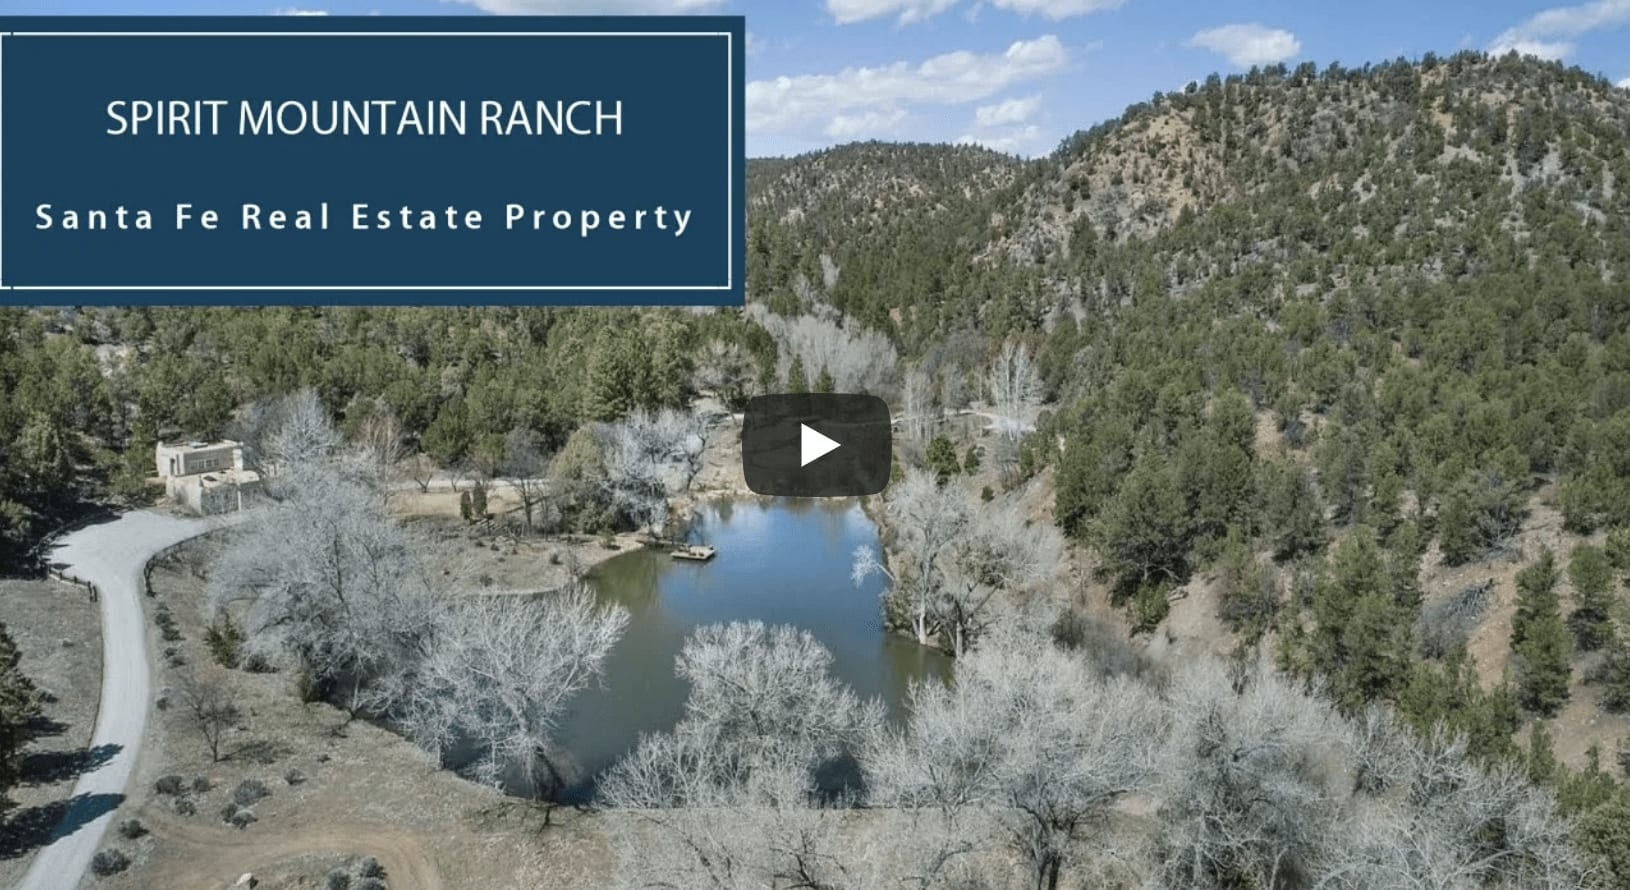 366 ACRES LOCATED JUST OUTSIDE OF SANTA FE | SPIRIT MOUNTAIN RANCH video preview